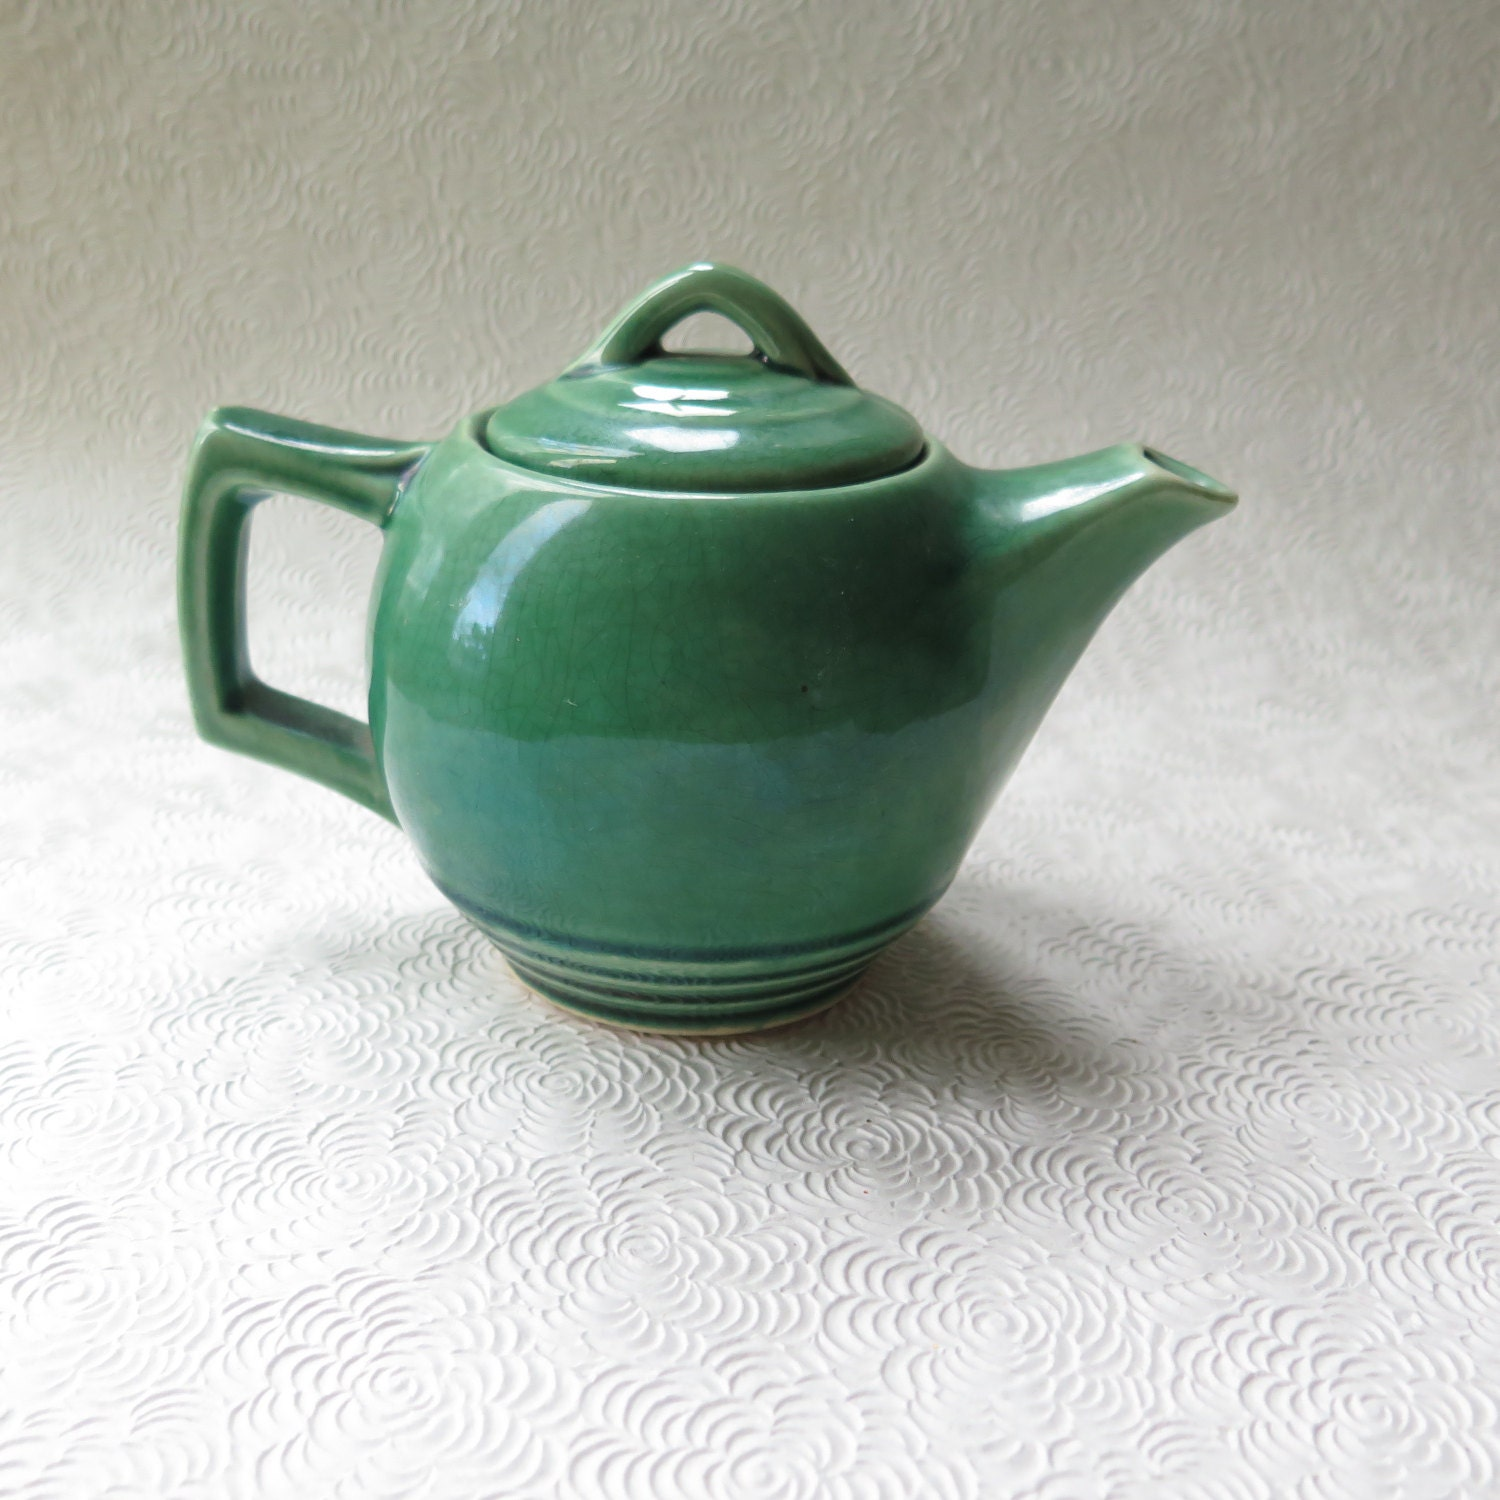 Mccoy Teapot Green Art Deco Pottery 1940s Signed Vintage